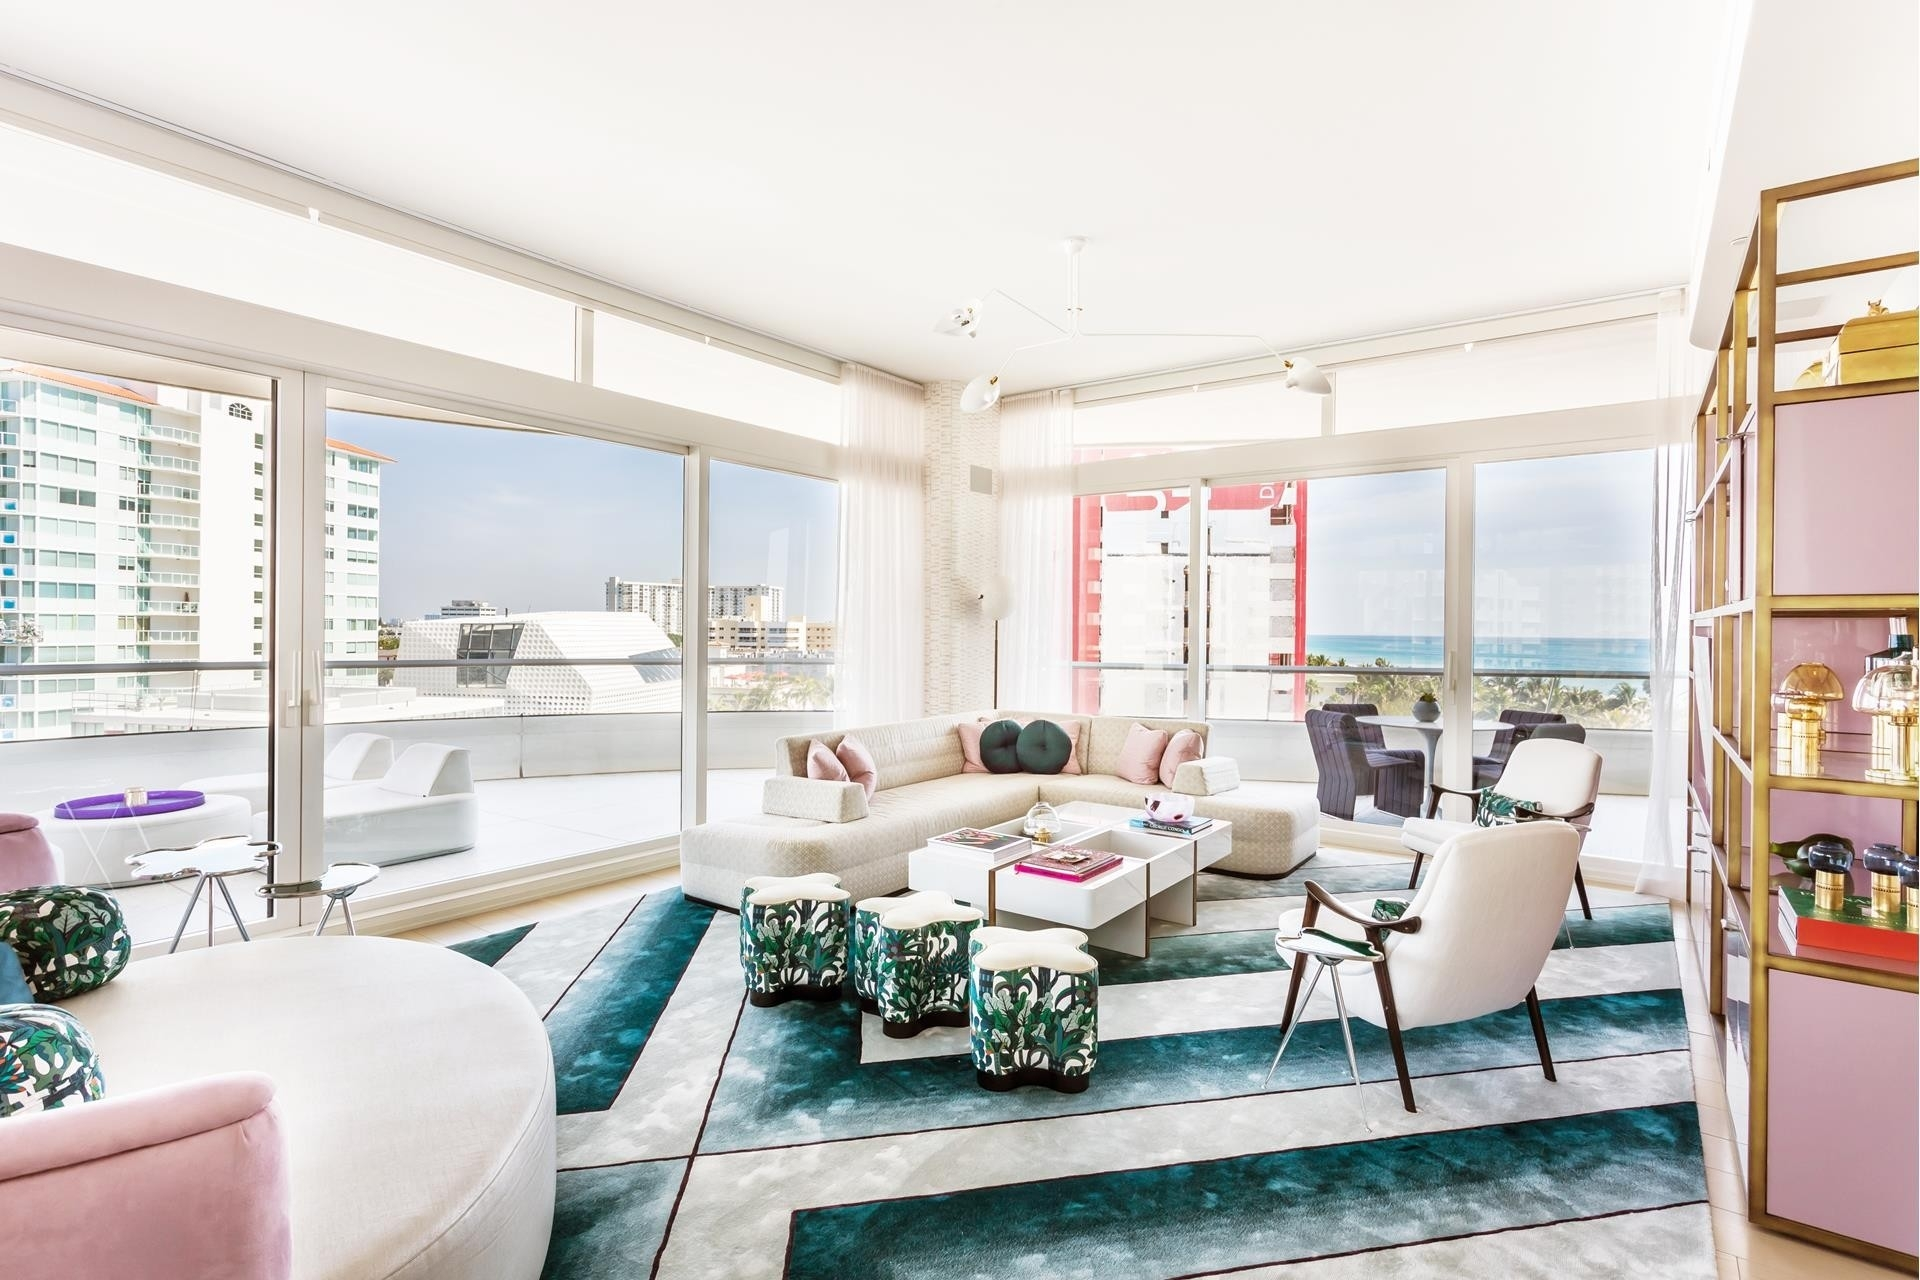 Condominium at 3315 Collins Ave , 6C Miami Beach